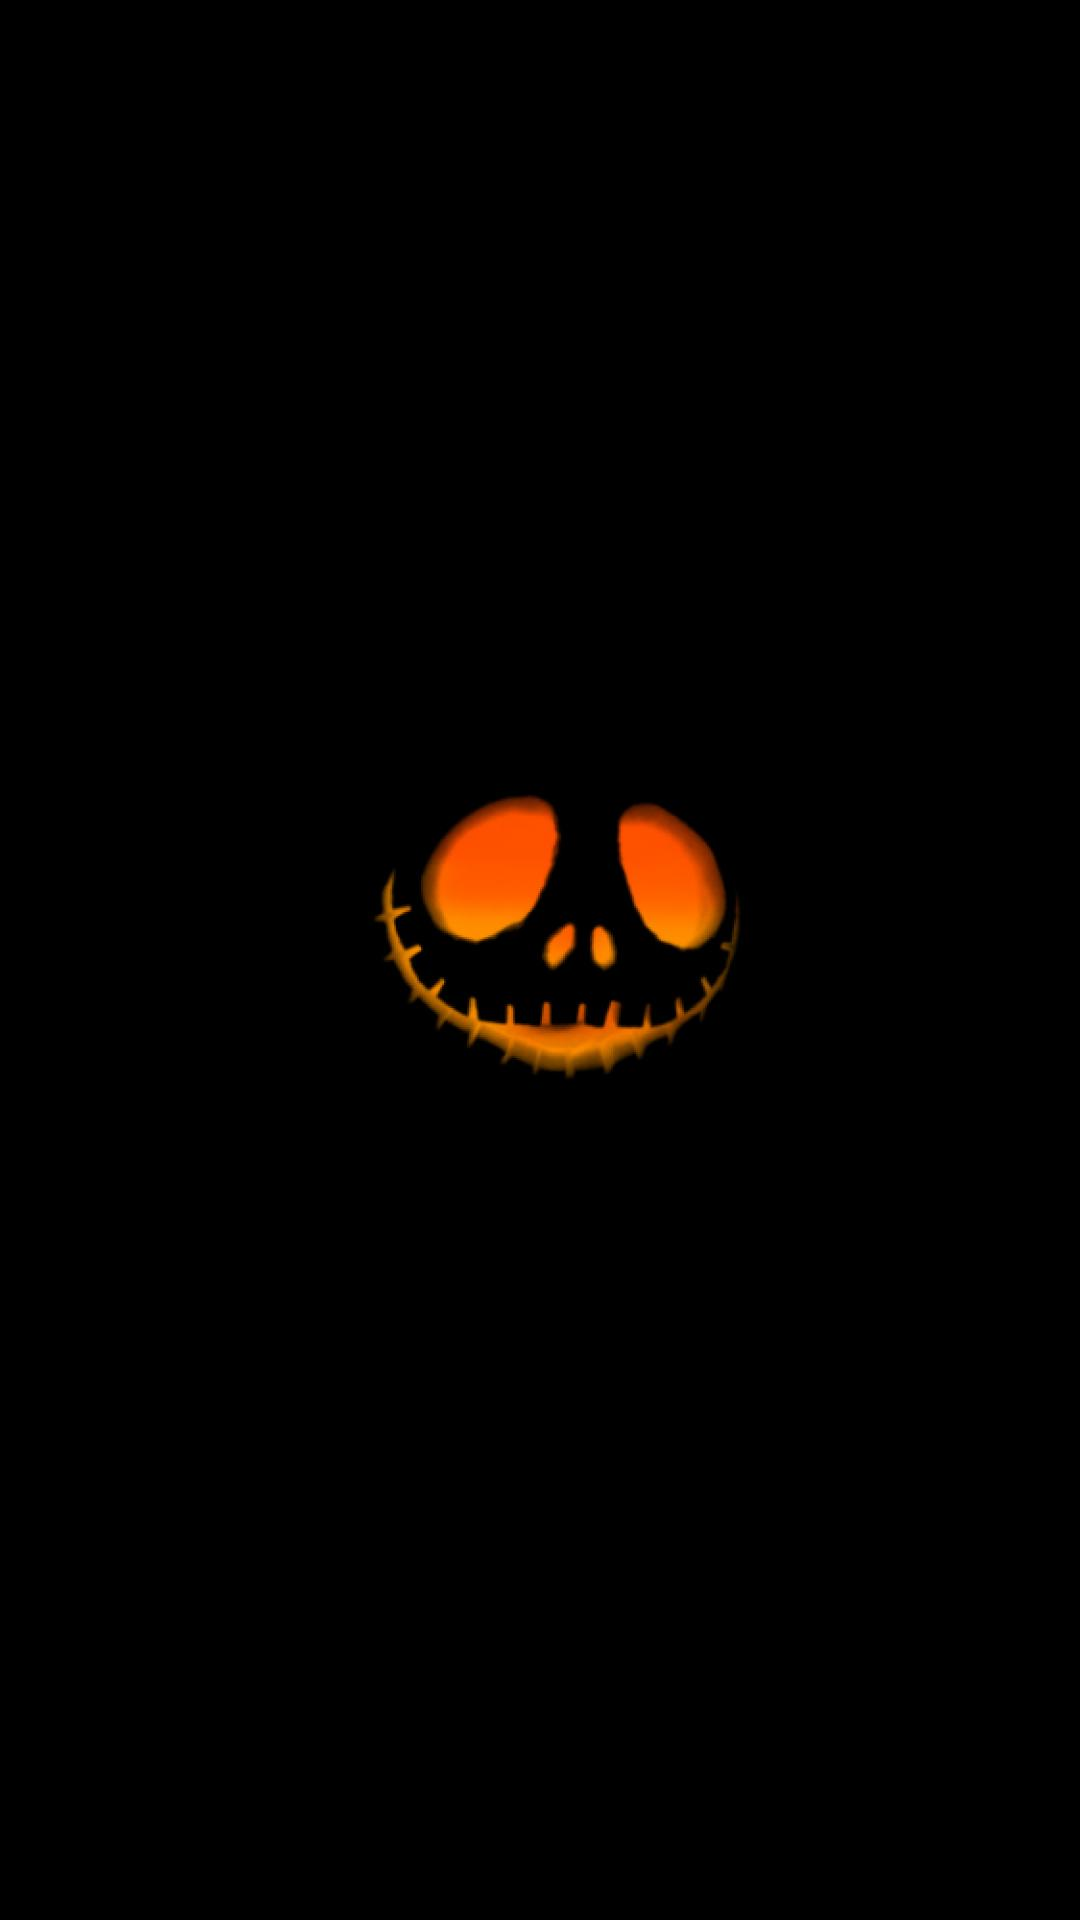 Free Download Halloween Wallpaper For Android Black Iphone 6 Plus